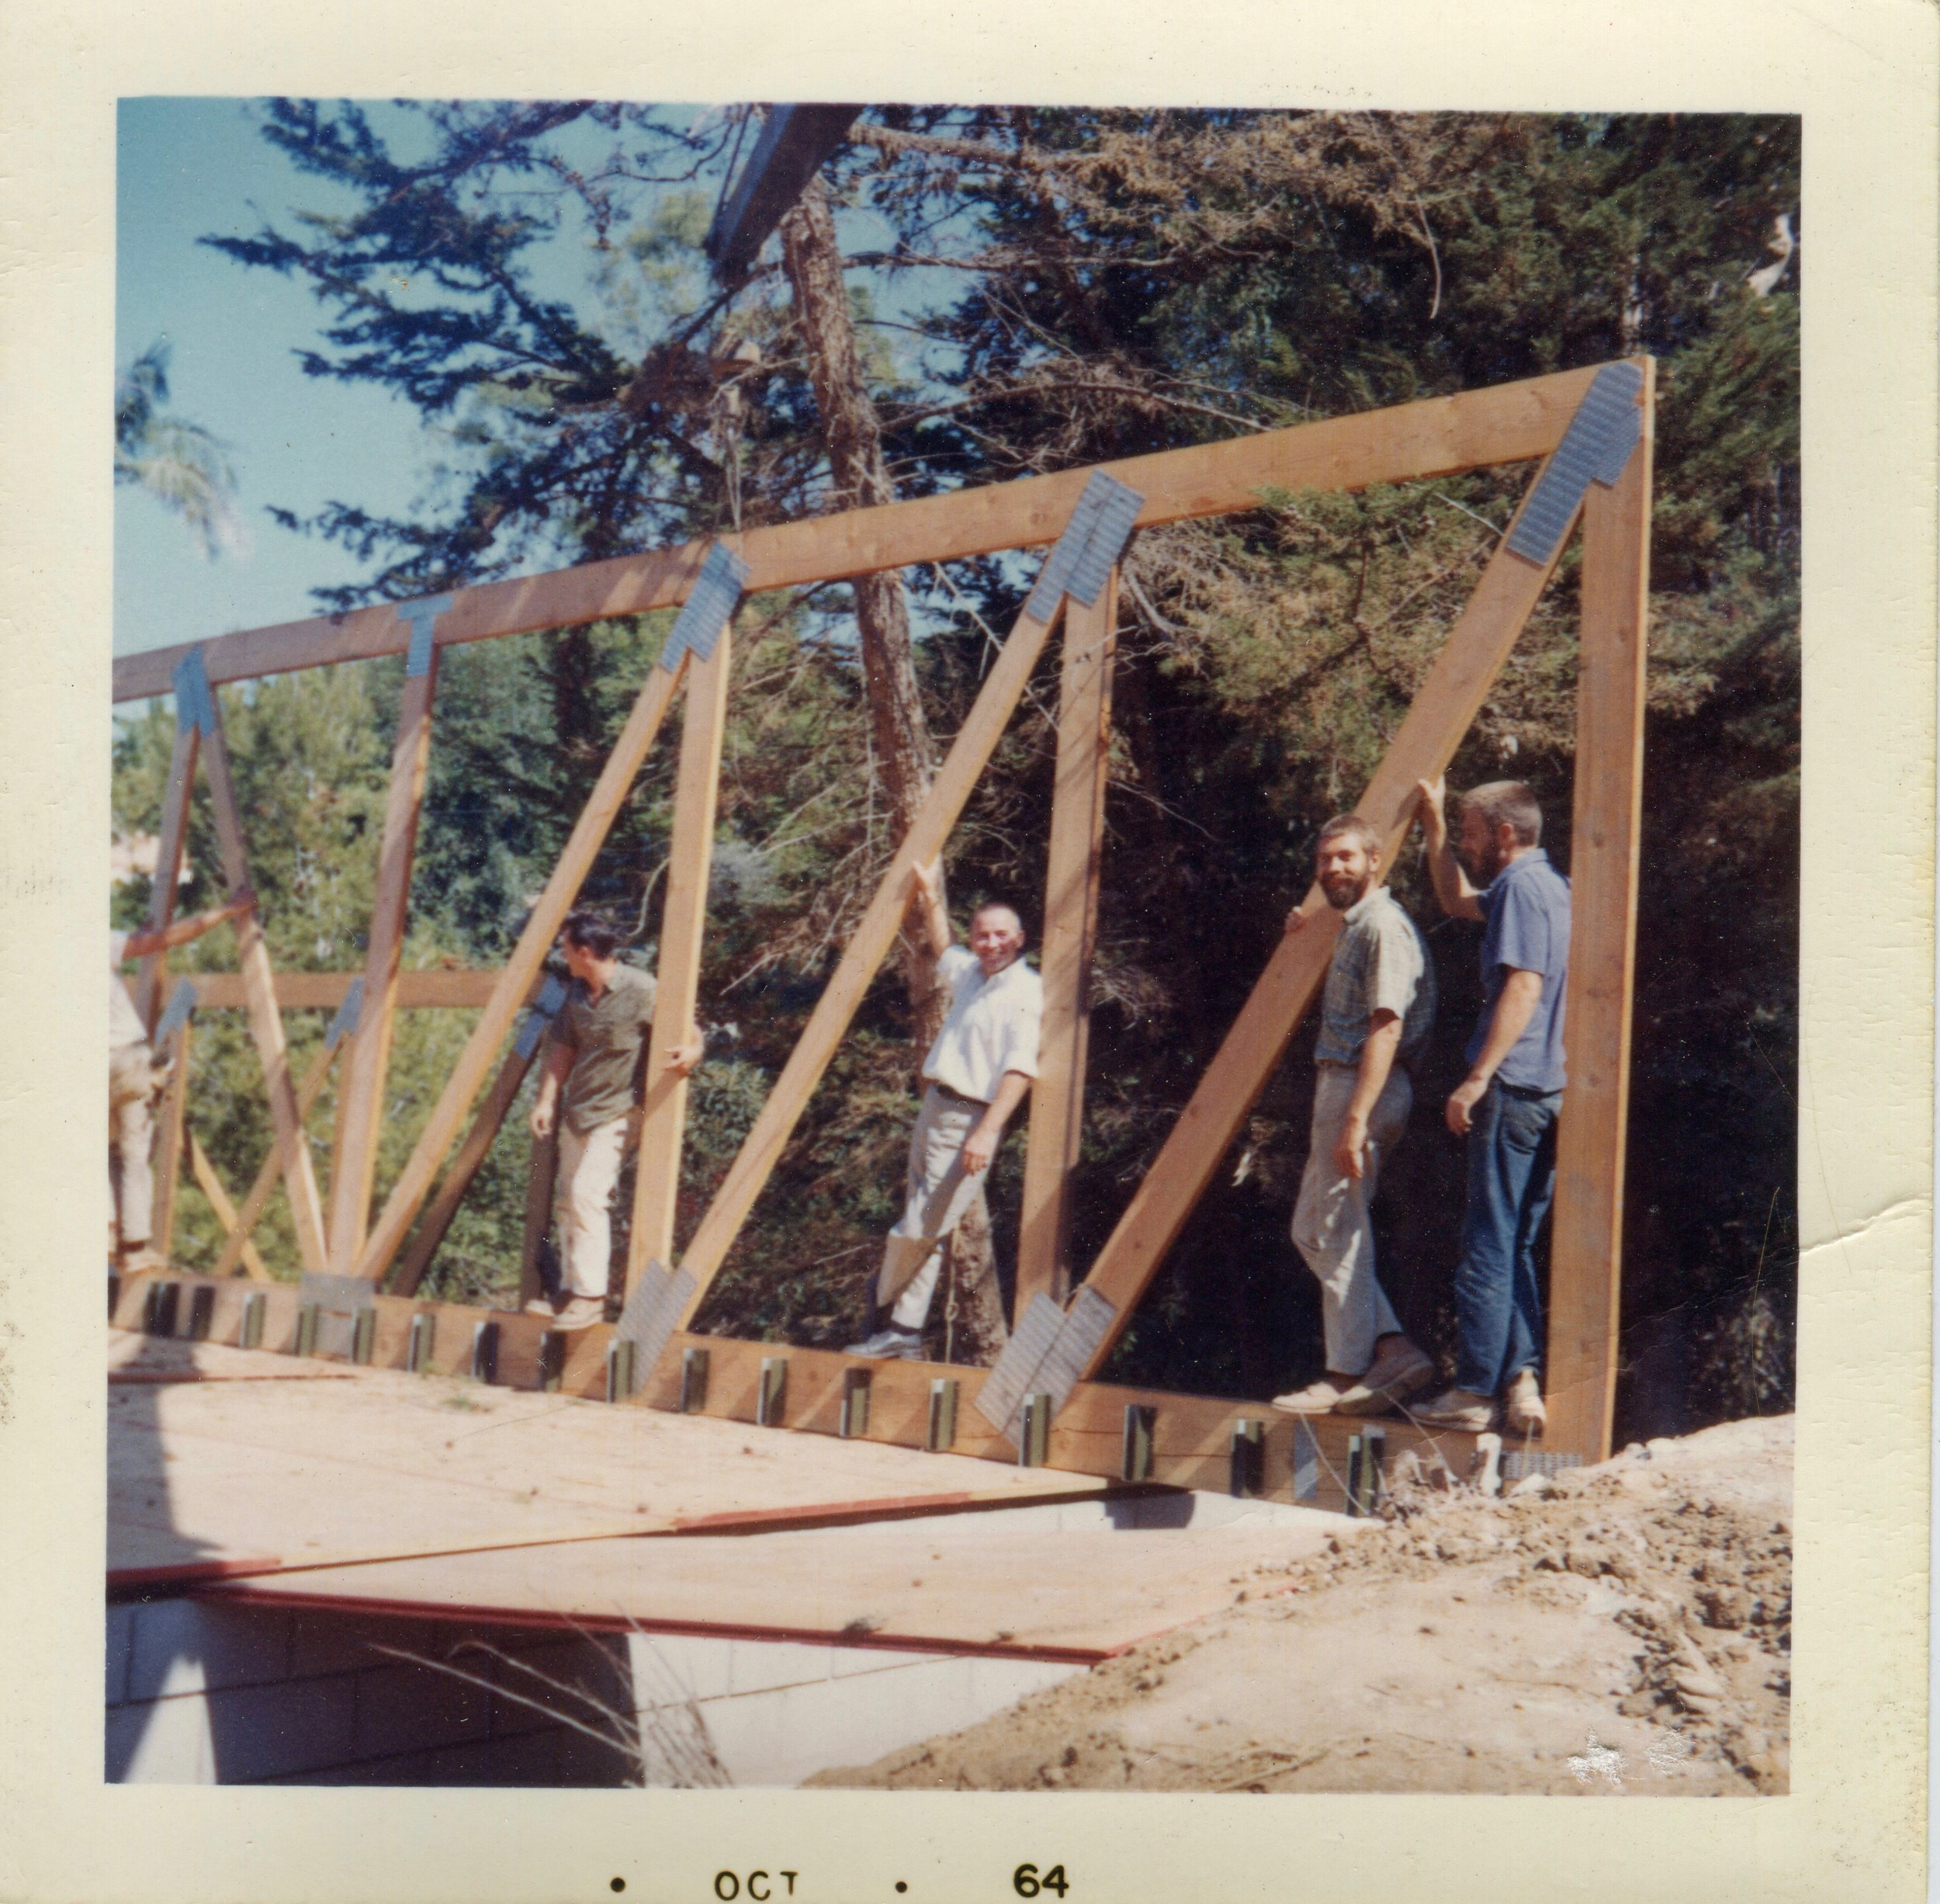 The second man on the Bridge Truss is Lamont and the third man is my Dad, Tom.